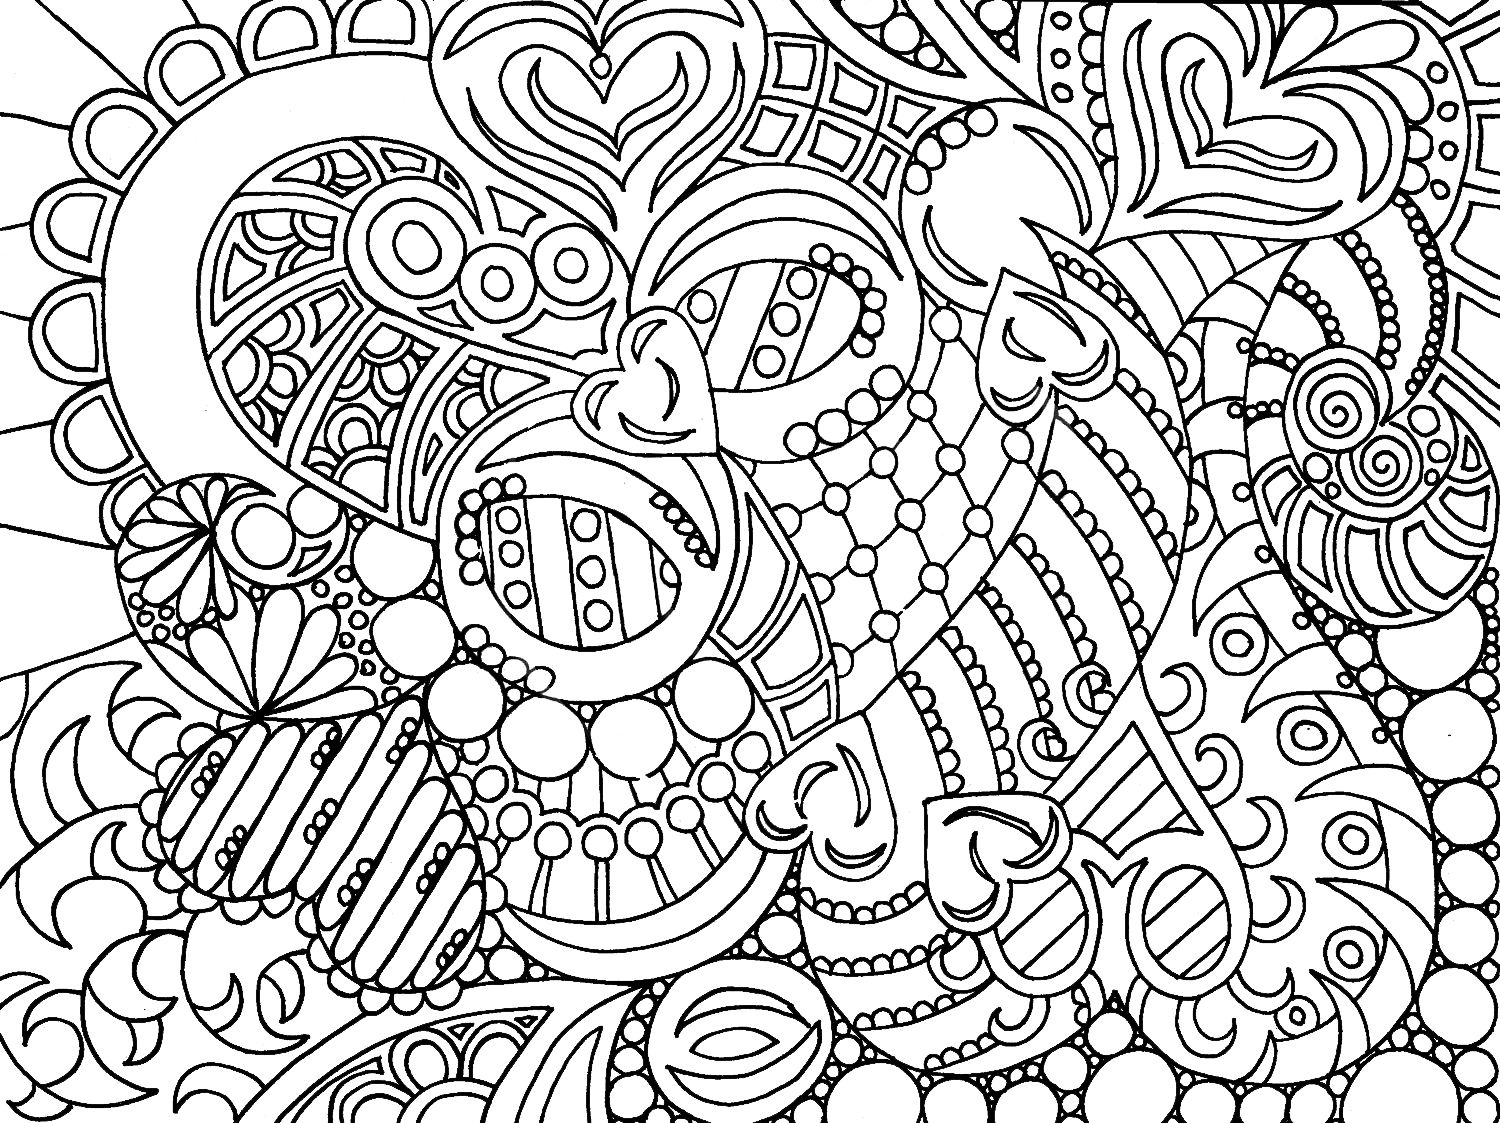 Online coloring sheets for adults - Advanced Coloring Pages Adults Coloring Pages Pictures Imagixs